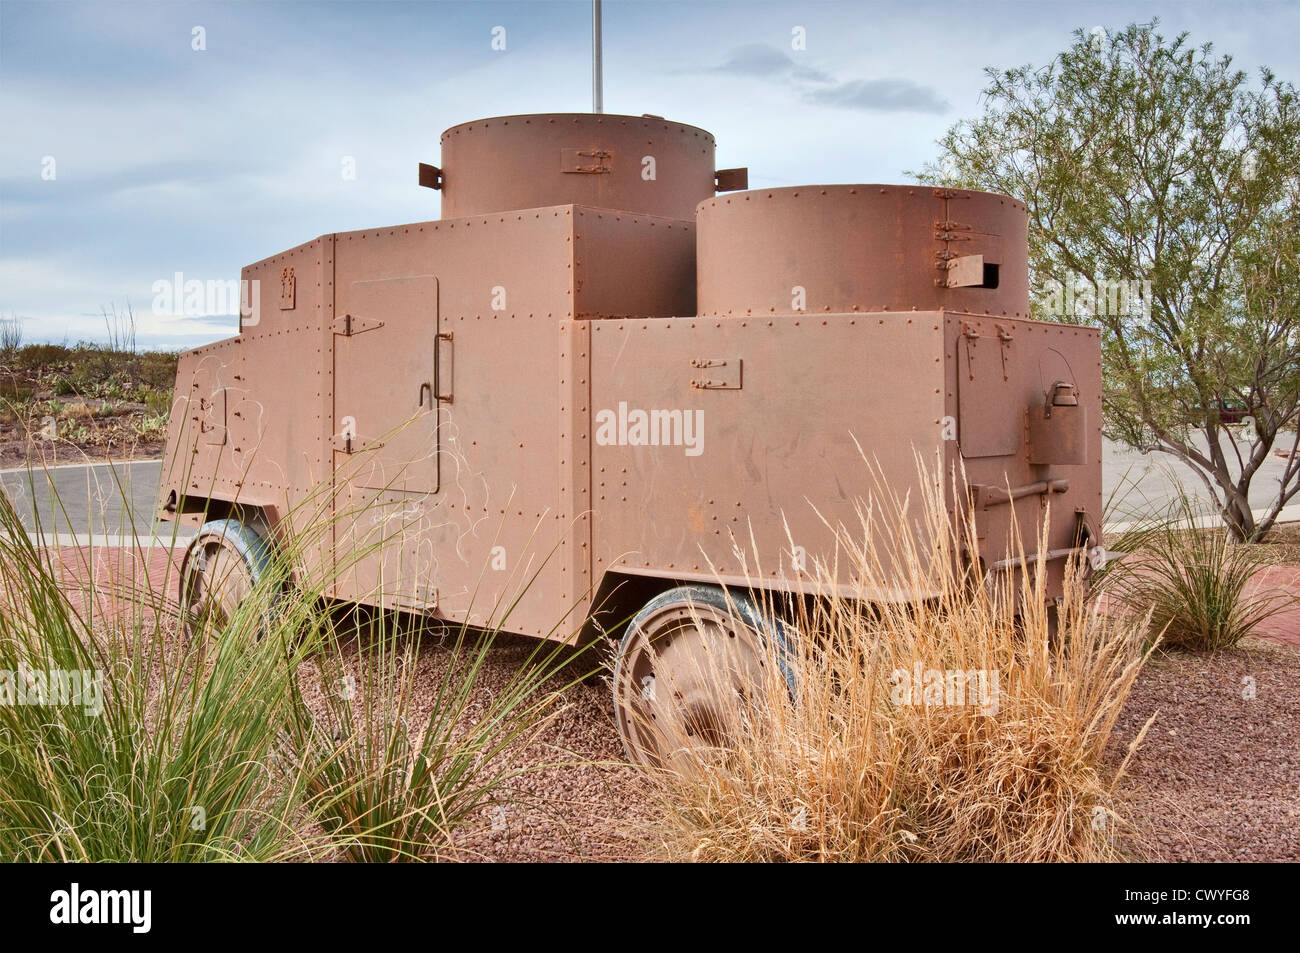 1915 Jeffery Quad Armored Truck, Gen. Pershing 'Punitive Exhibition' display at Pancho Villa State Park - Stock Image